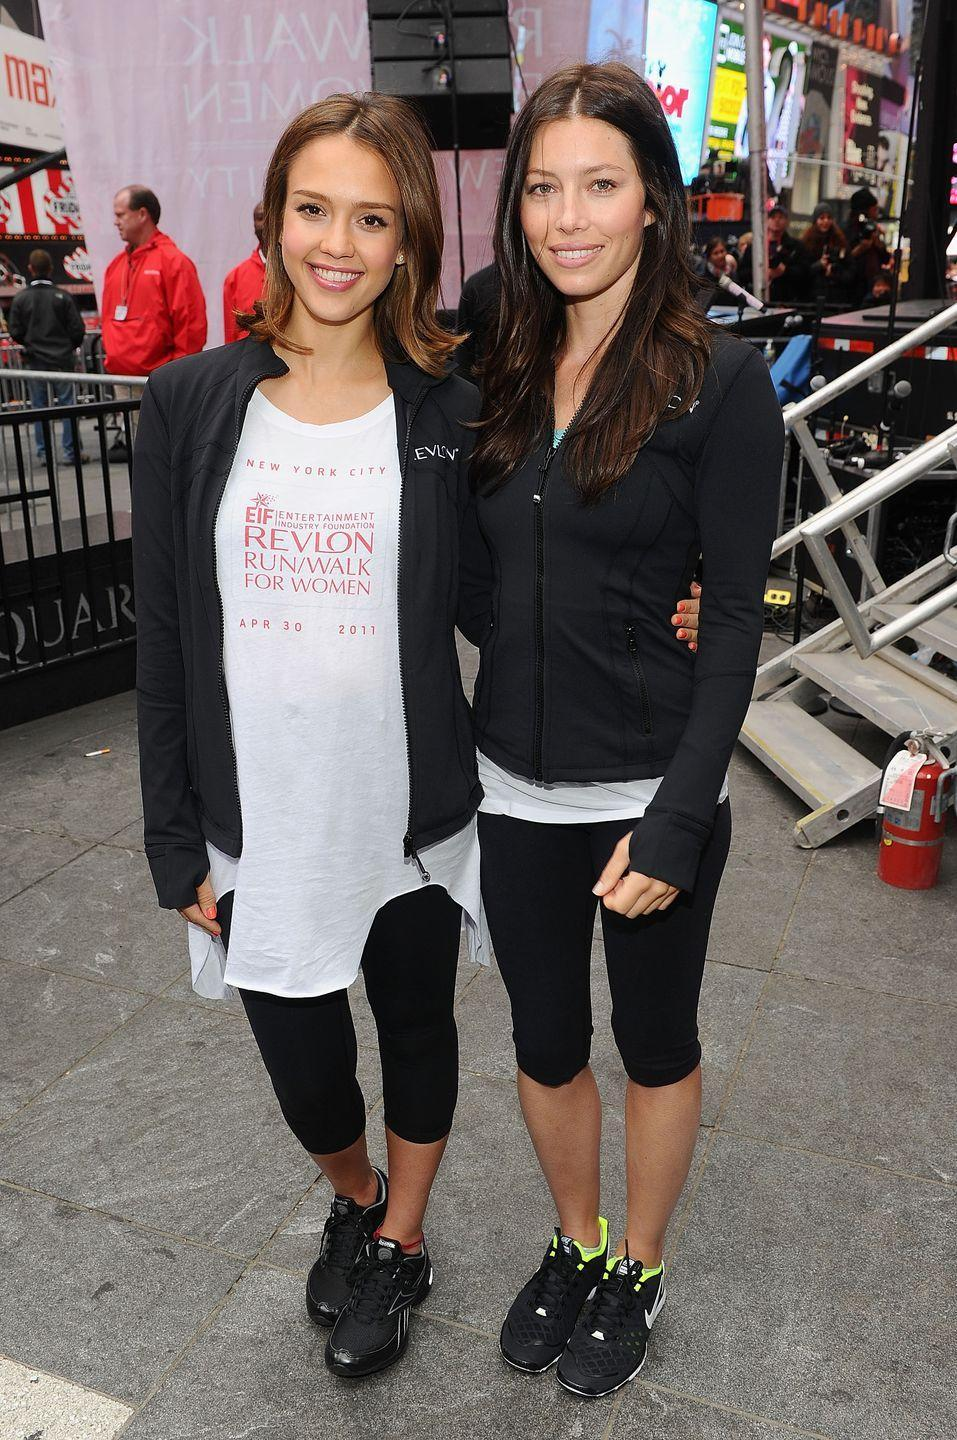 """<p>Jessica's Instagram is filled with photos of herself and her workout friends. 'I really like taking group classes, or I like to work out with friends,' she told <a href=""""https://www.byrdie.com/jessica-alba-diet-fitness-tips"""" rel=""""nofollow noopener"""" target=""""_blank"""" data-ylk=""""slk:Byrdie"""" class=""""link rapid-noclick-resp"""">Byrdie</a>. 'I'll always work out with a friend because it's more fun.'</p>"""